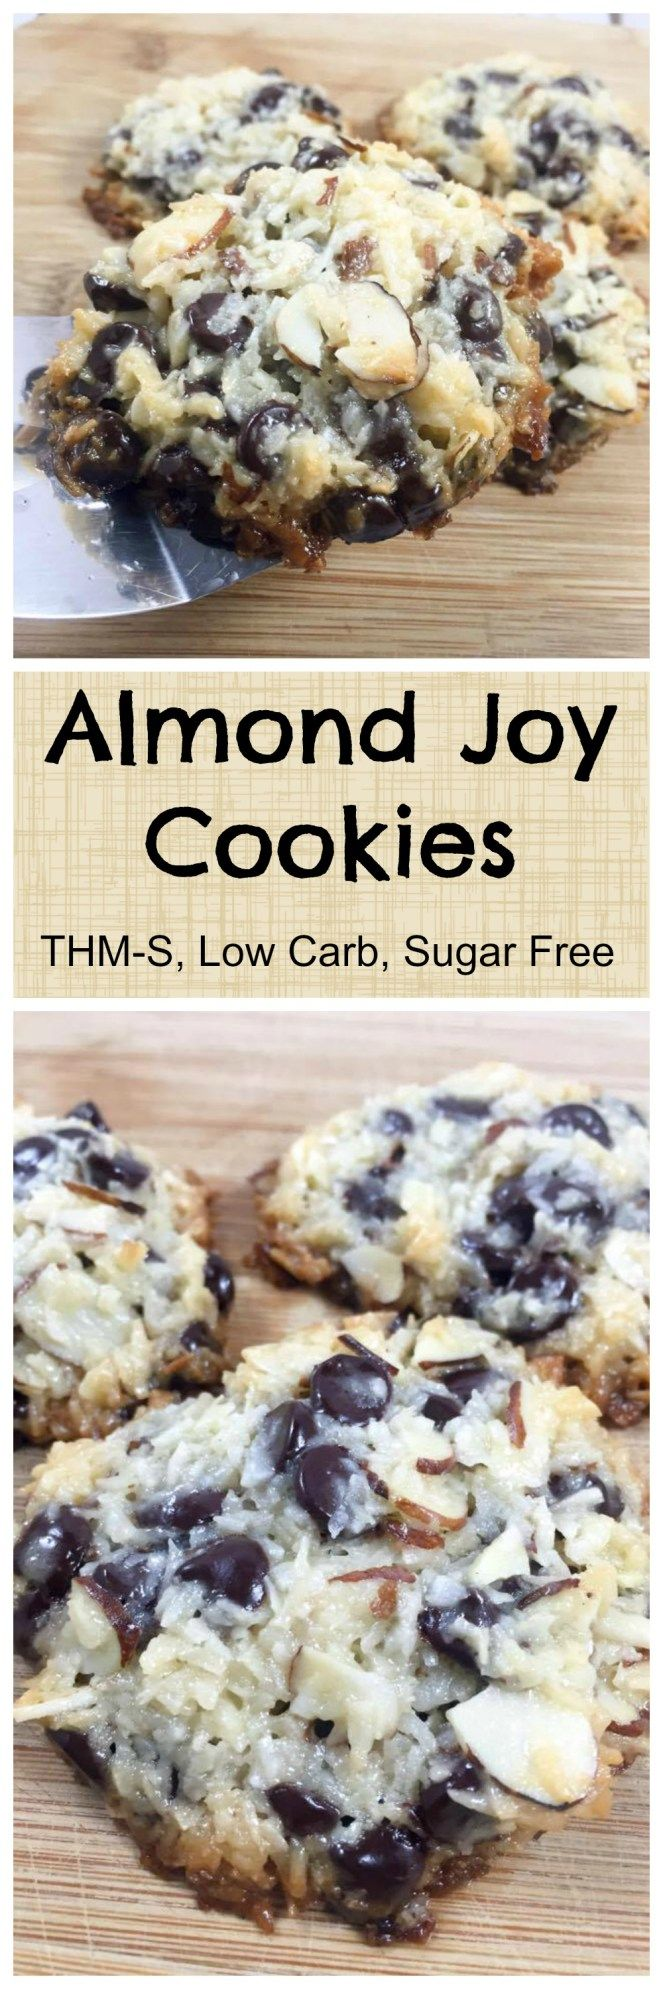 Low Carb, Sugar Free Almond Joy Cookies